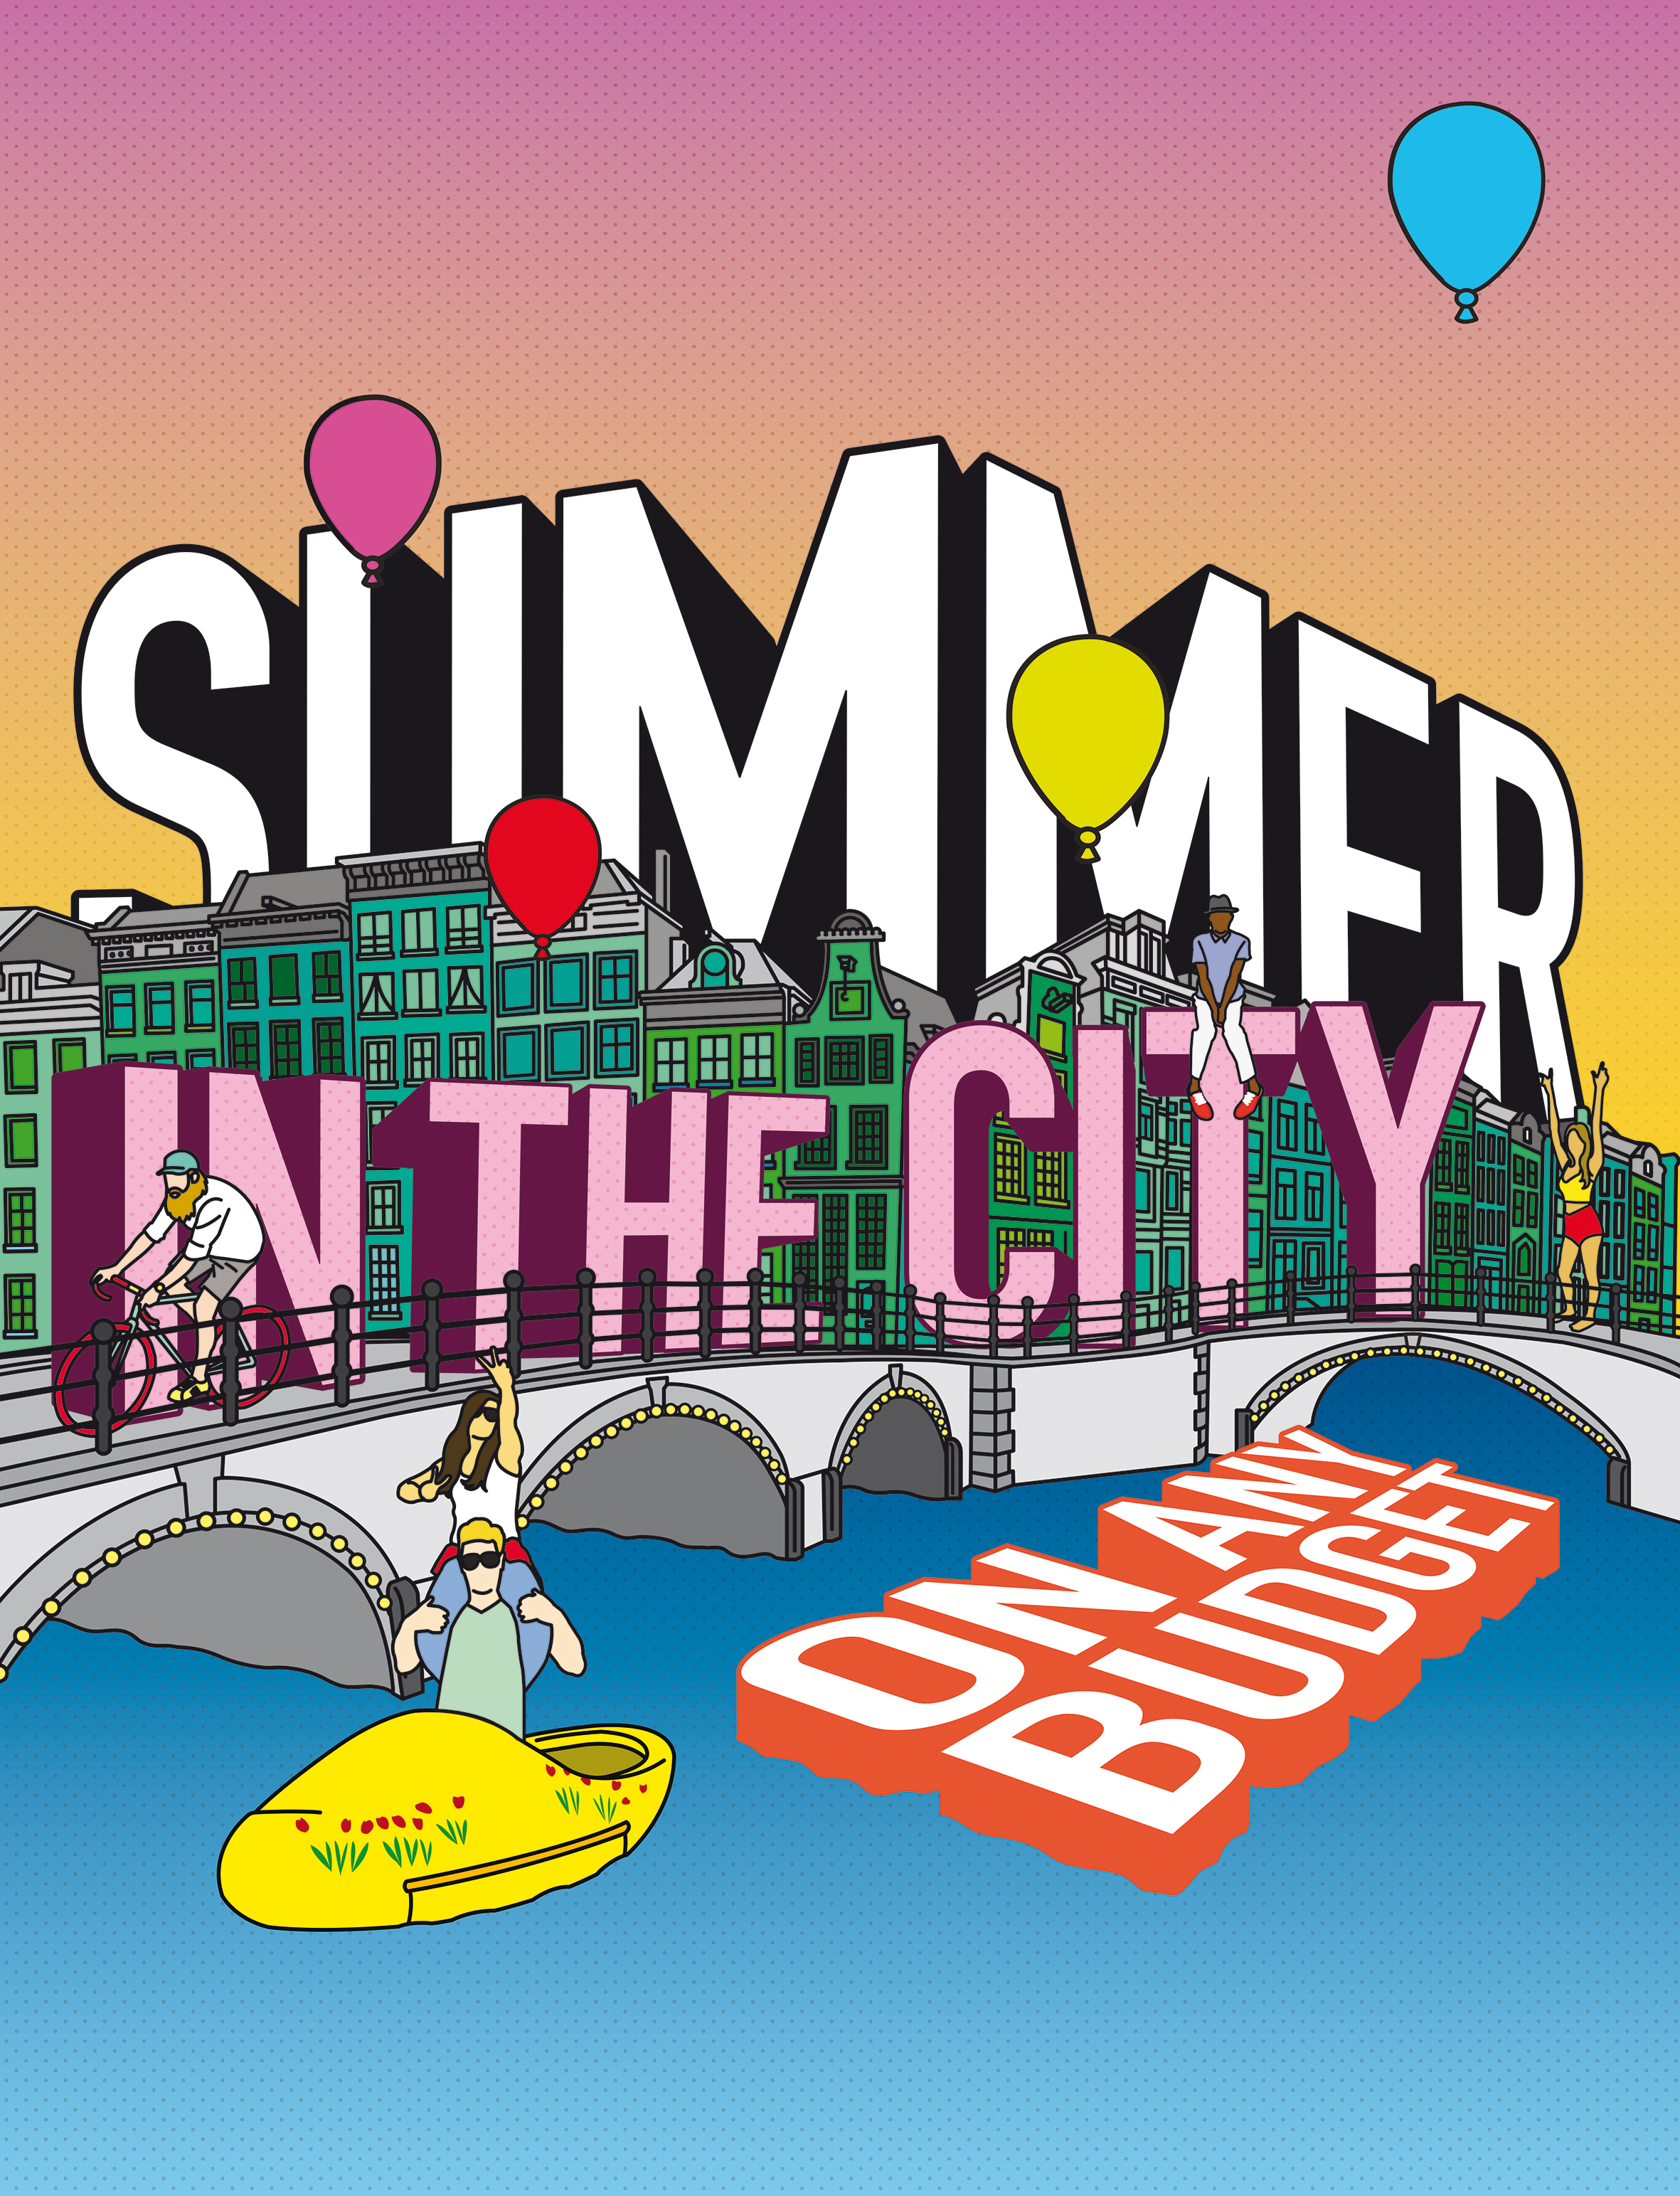 Summer in the City cover illustration for Amsterdam Magazine